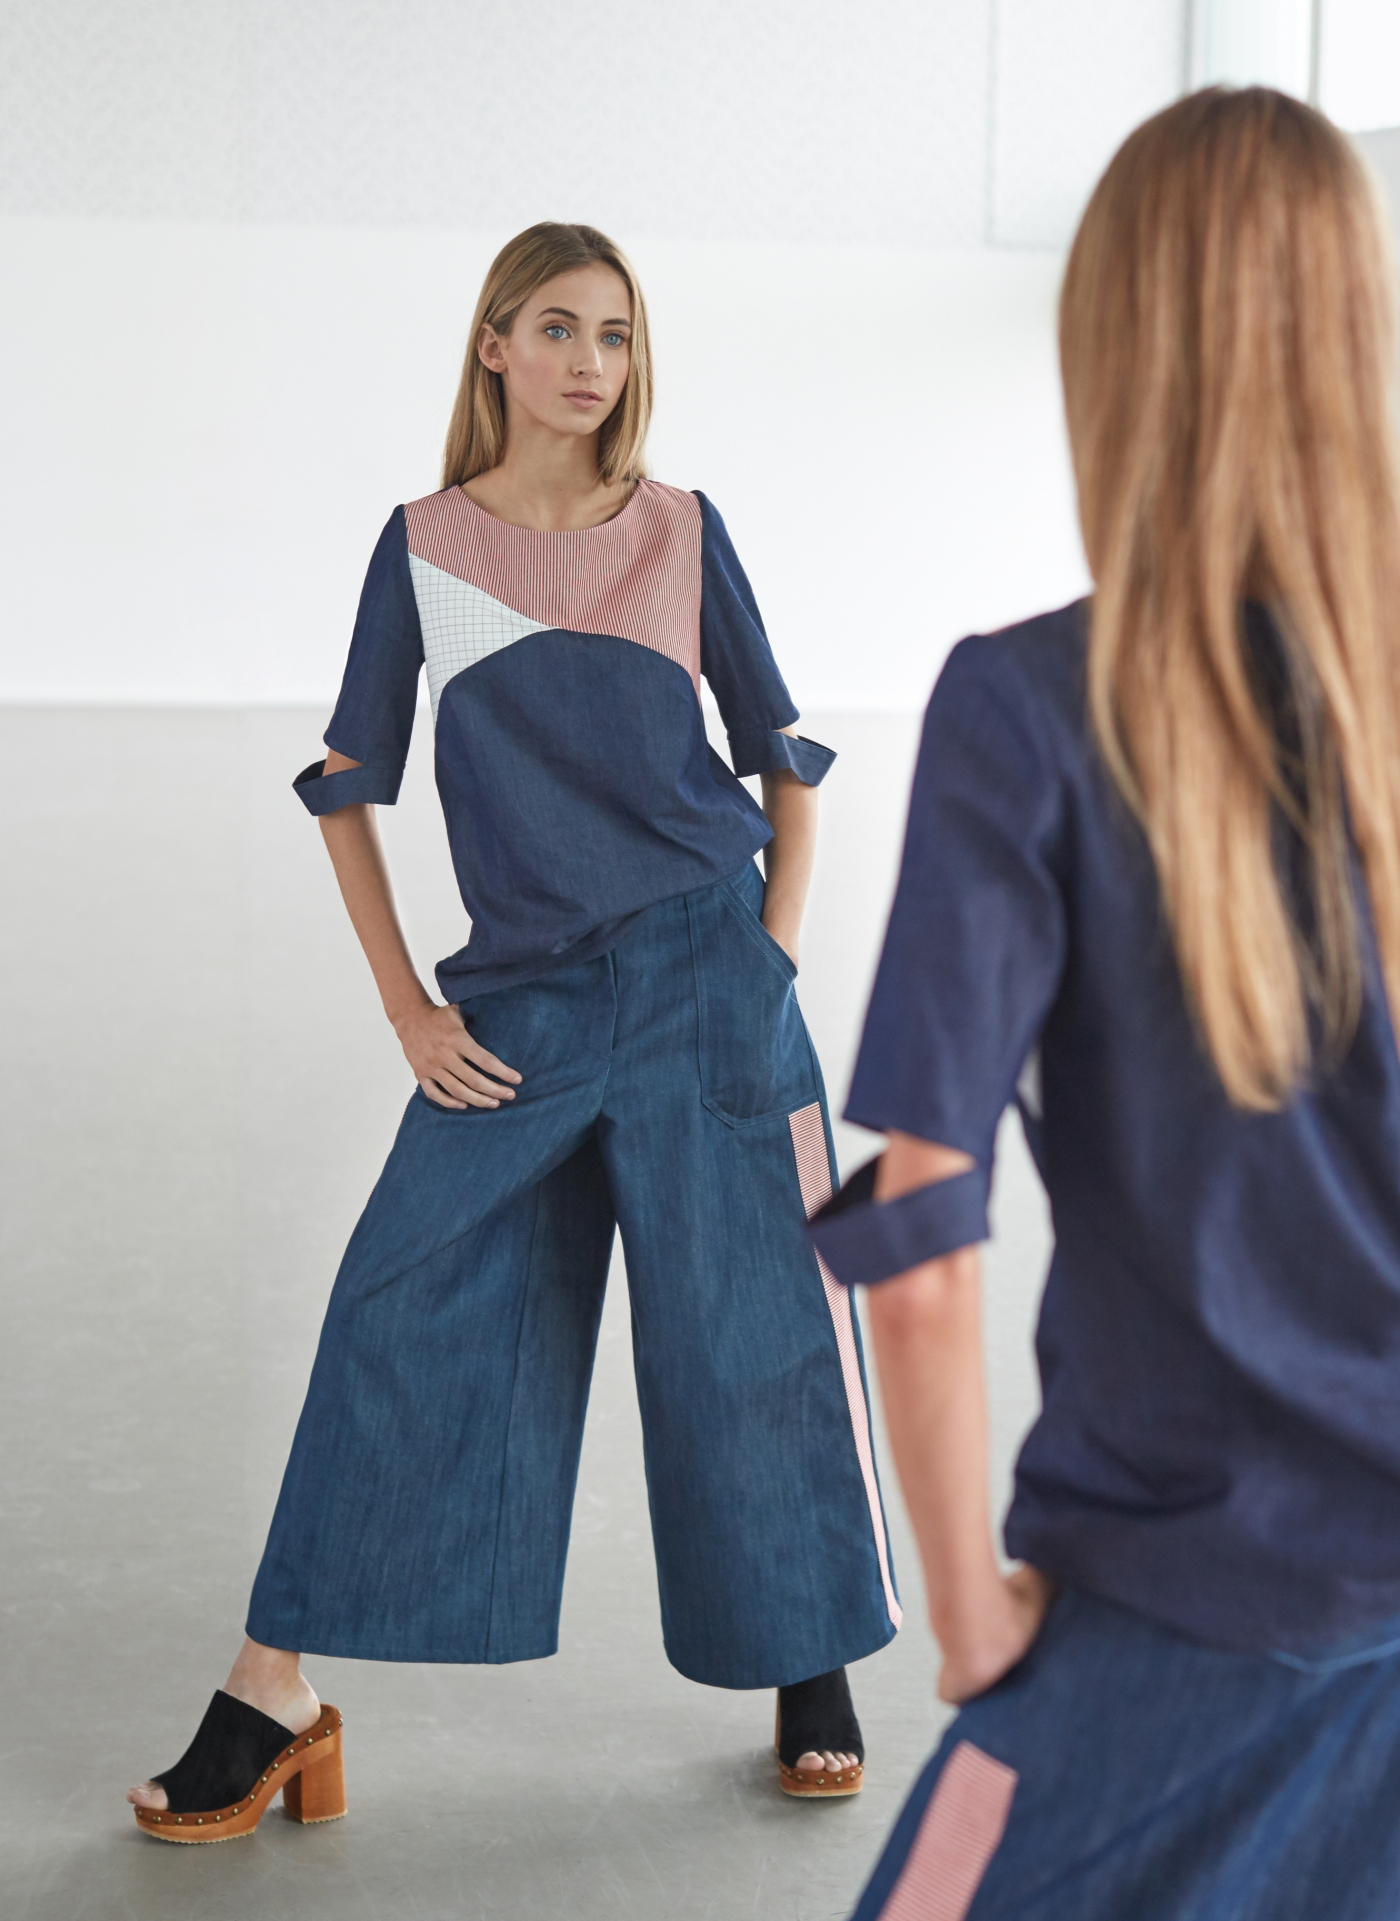 Asymmetric lines | Deconstructed sleeve | Wide leg high waist trousers